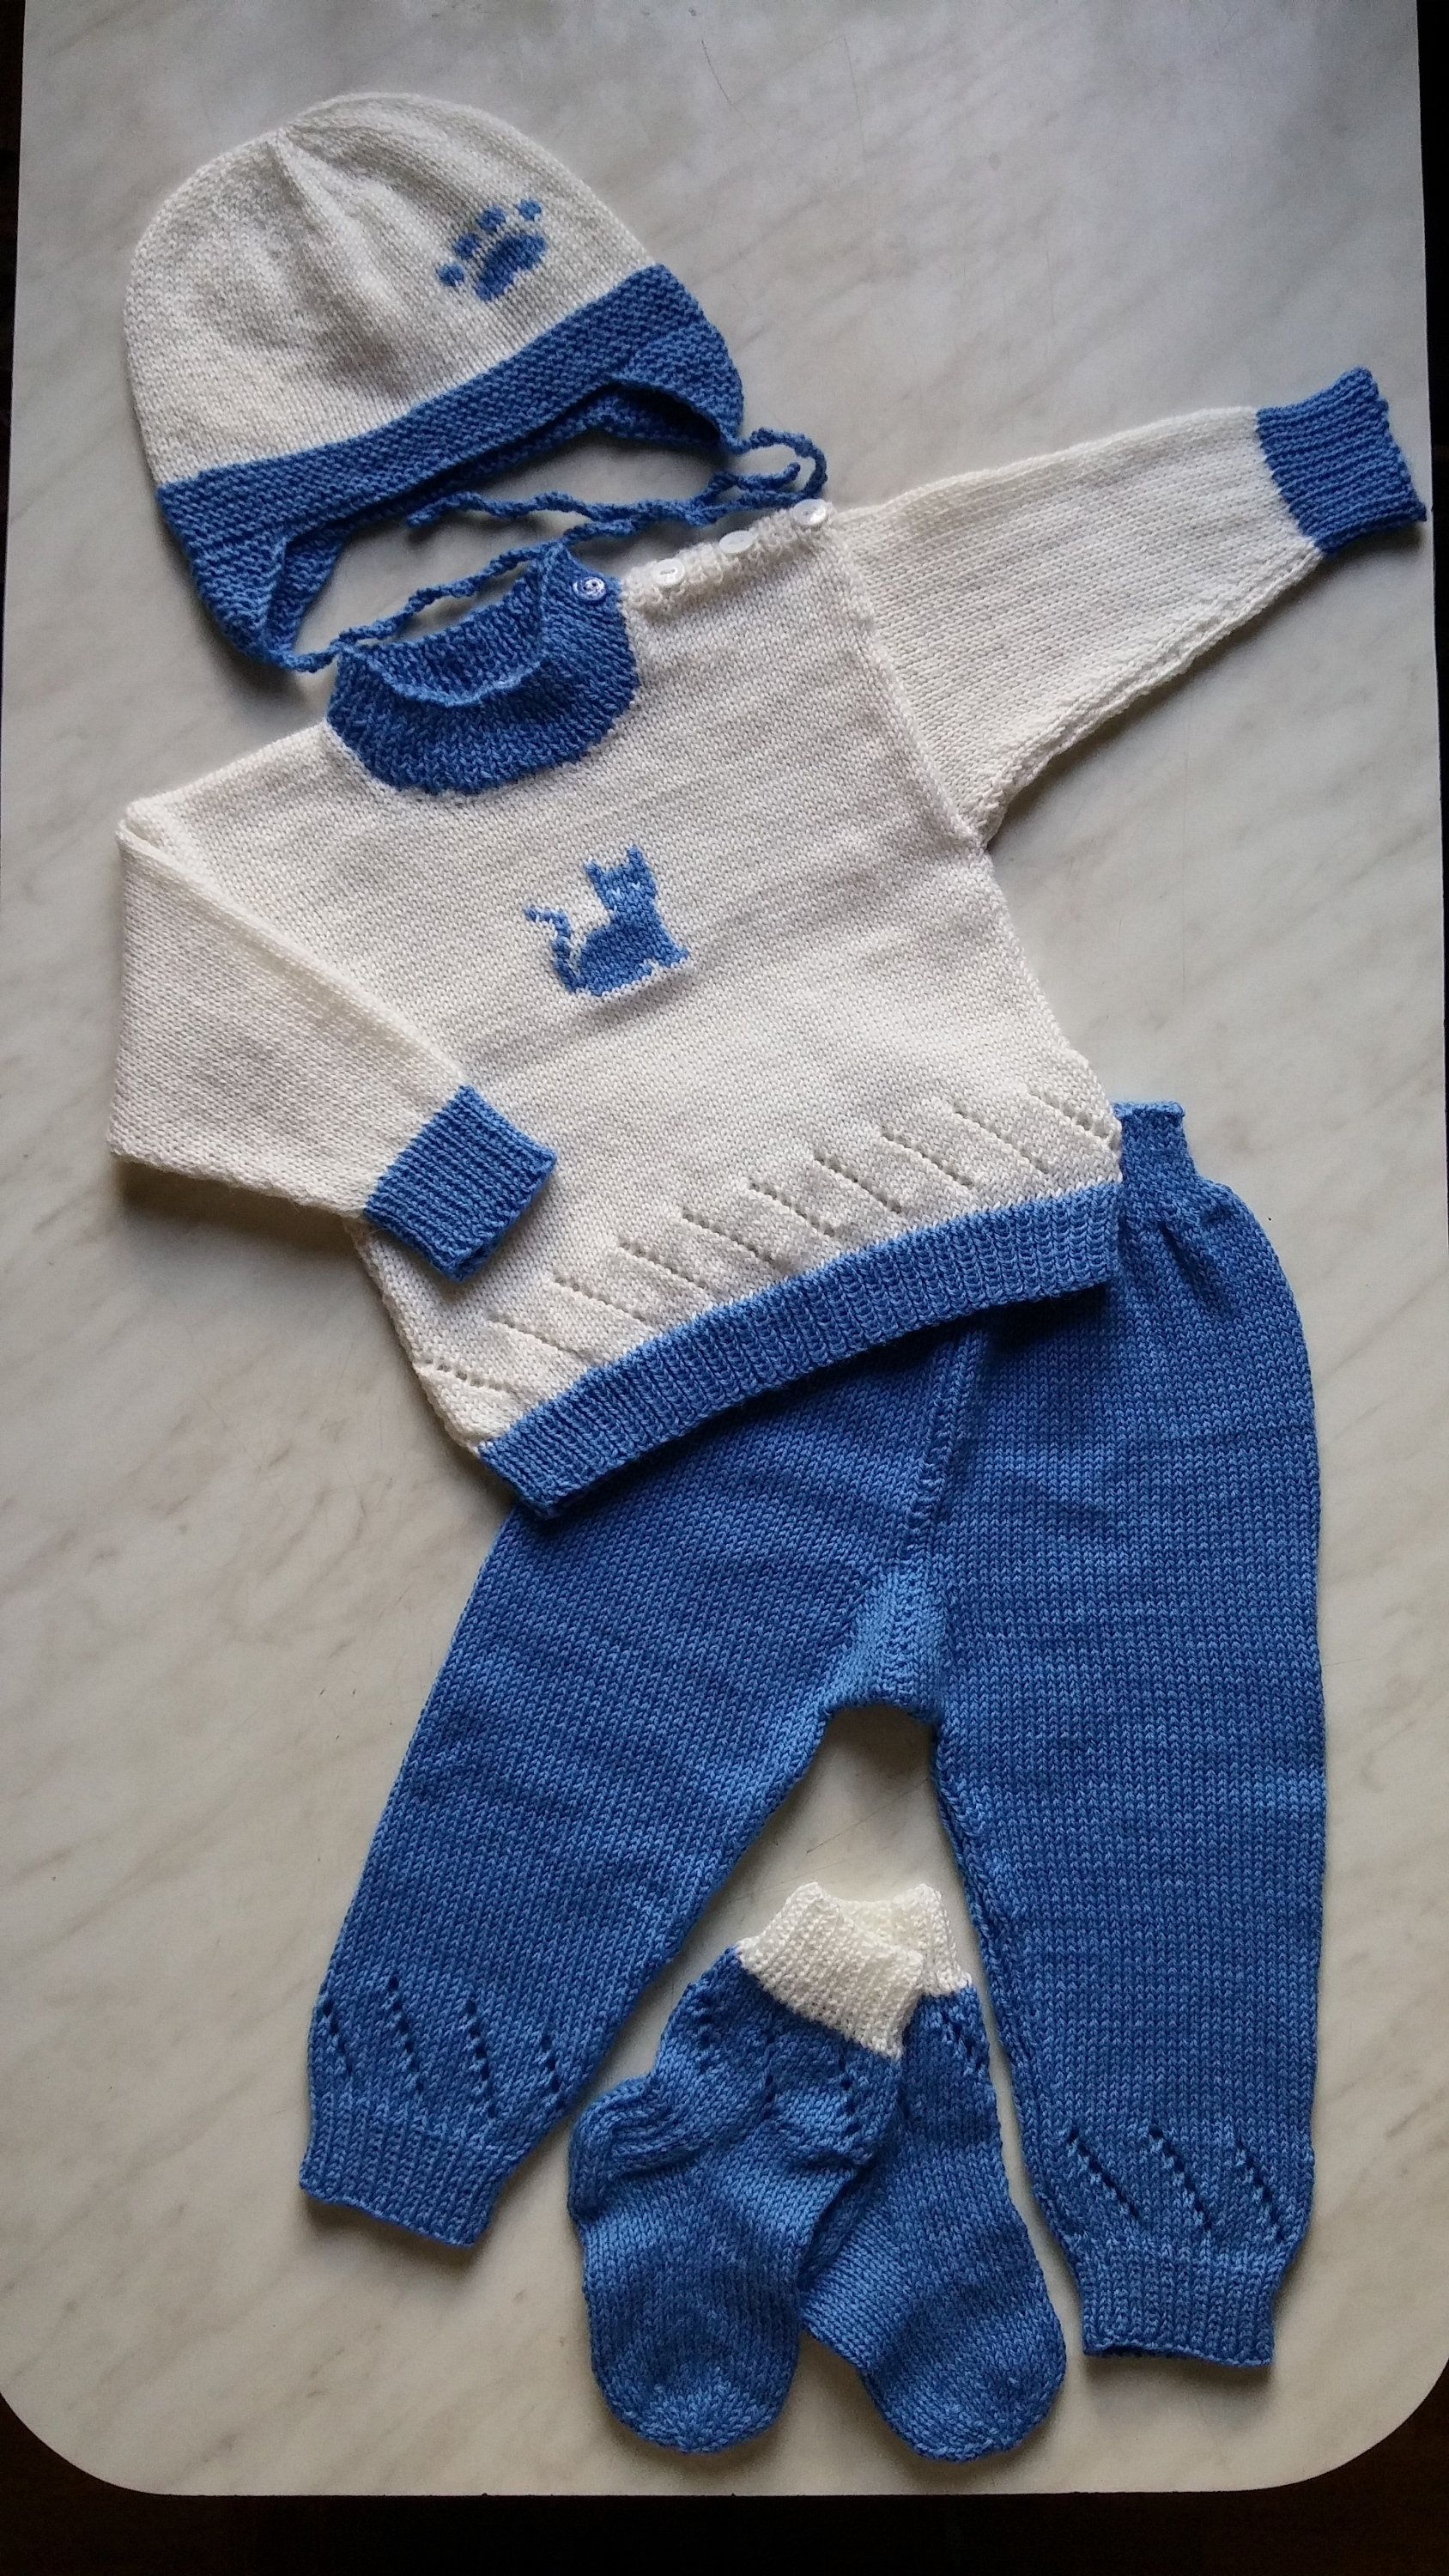 853ed1ee3 Knit Sweater Set with Cat  Hand Made Baby Boy Sweater